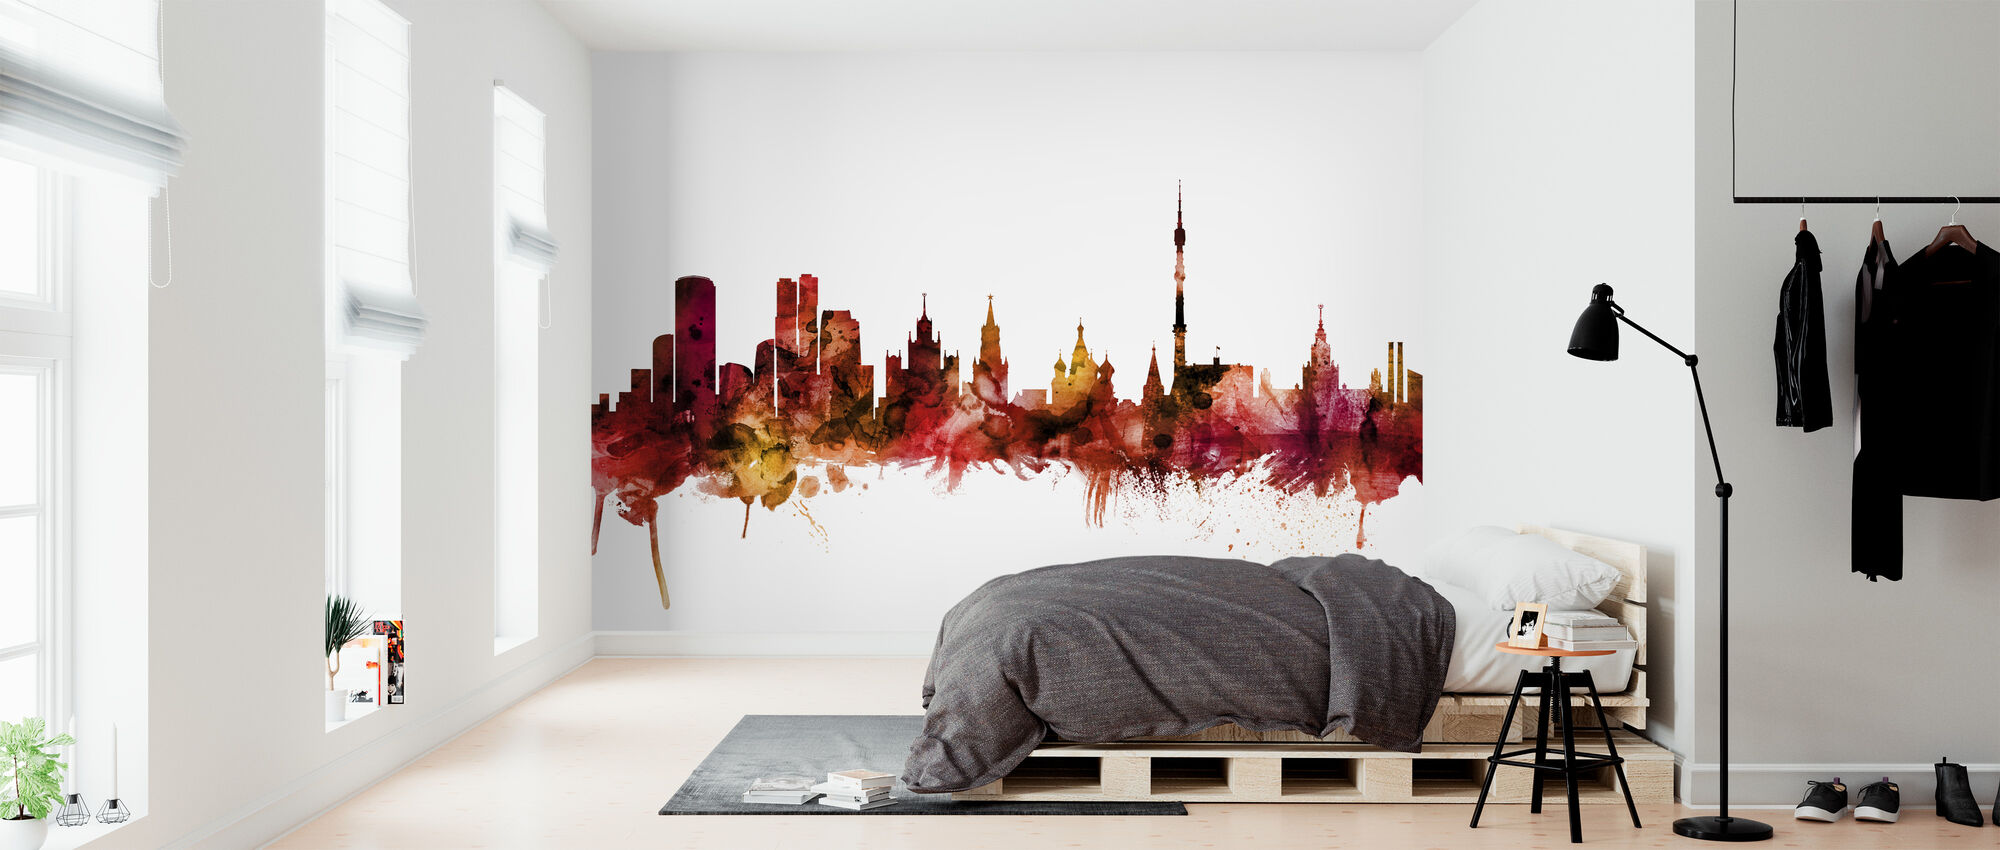 Moscow Russia Skyline - Wallpaper - Bedroom